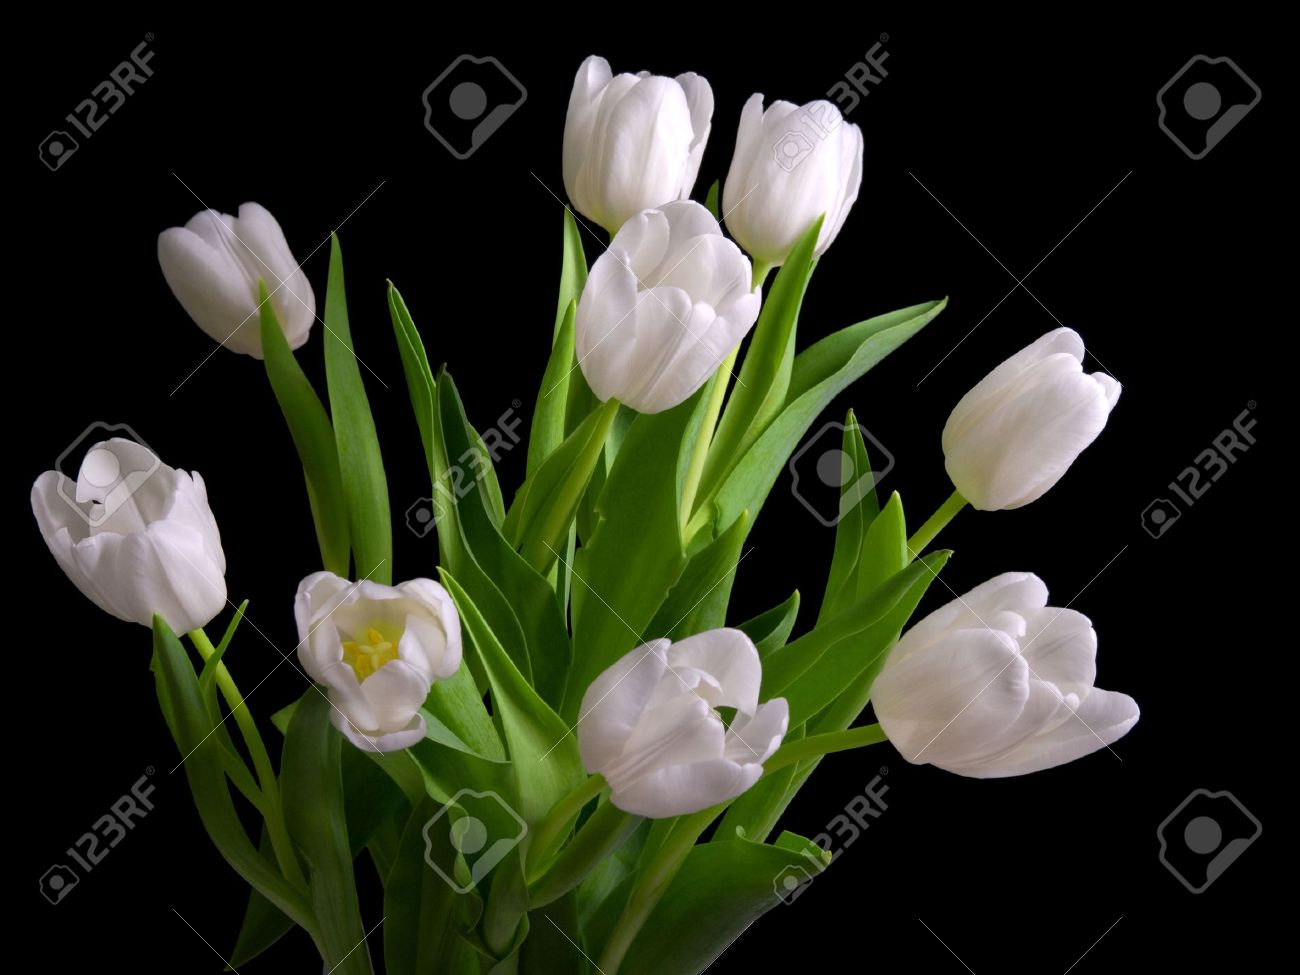 White Tulips On Black Background Stock Photo Picture And Royalty